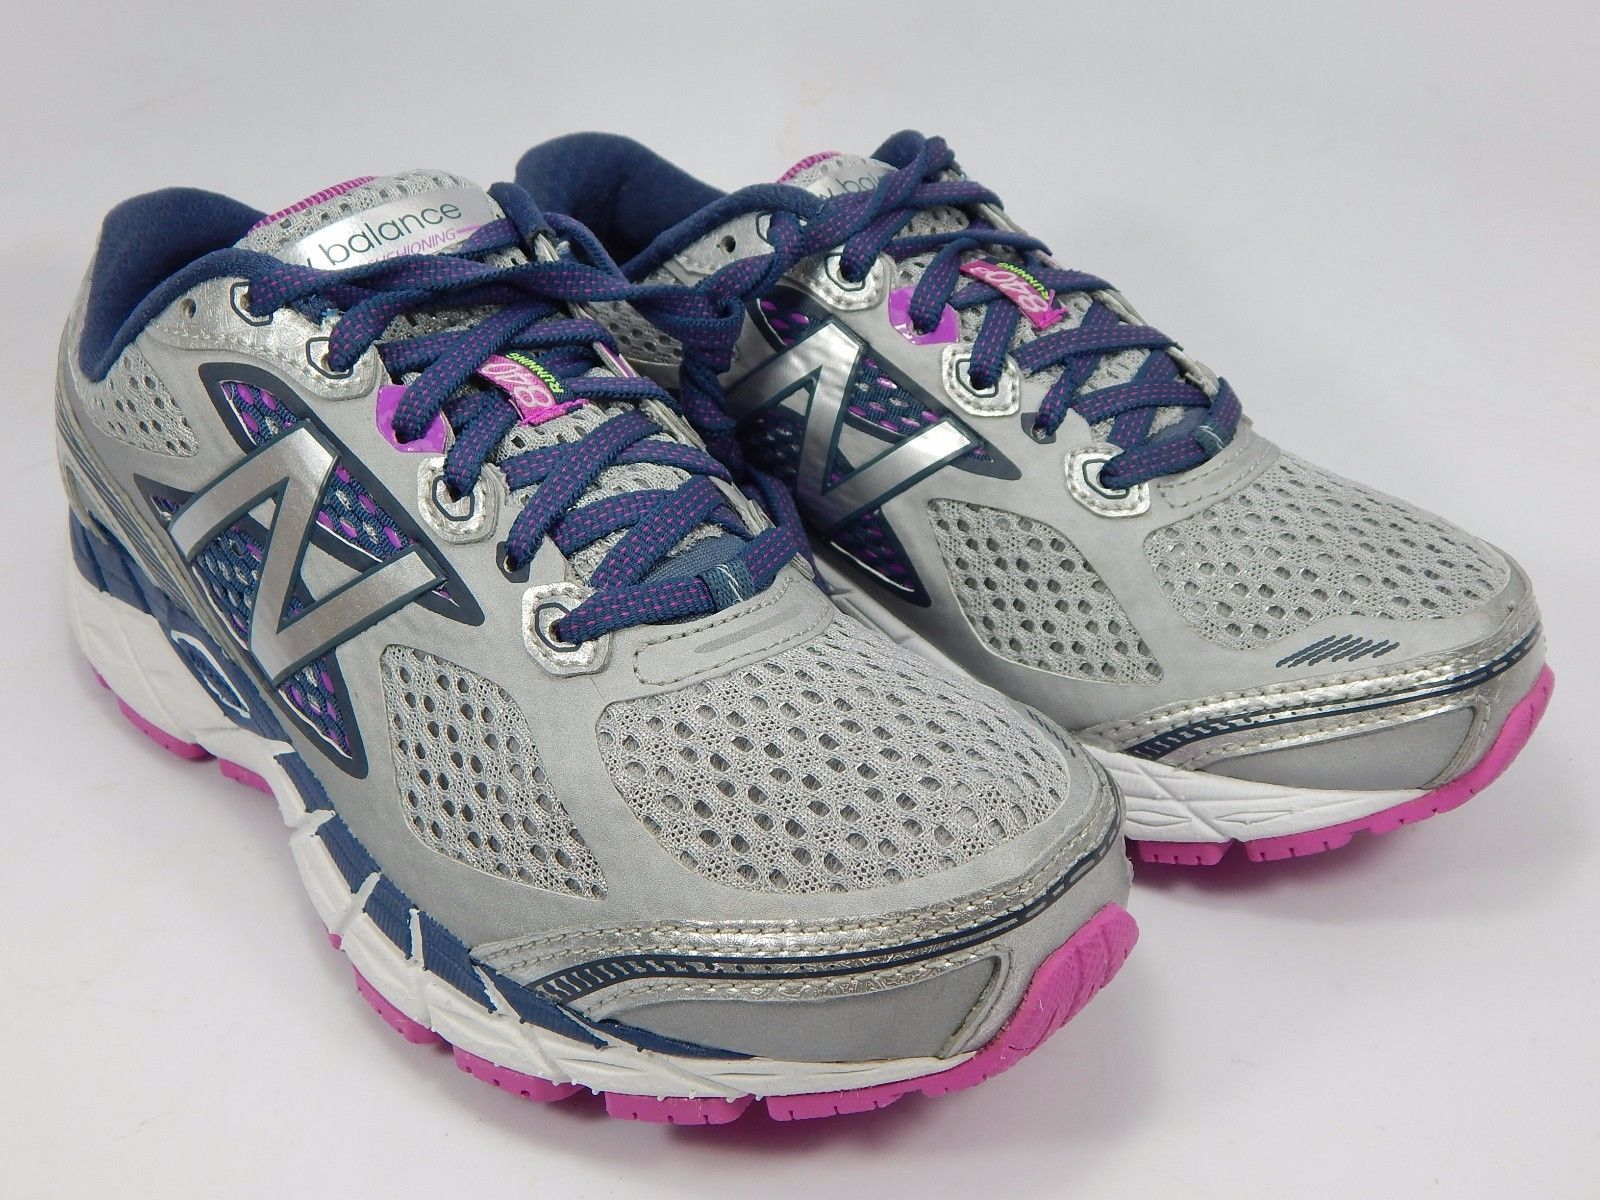 MISMATCH New Balance 840 v3 Women's Shoes Size 5 D WIDE Left & 6 2E WIDE Right